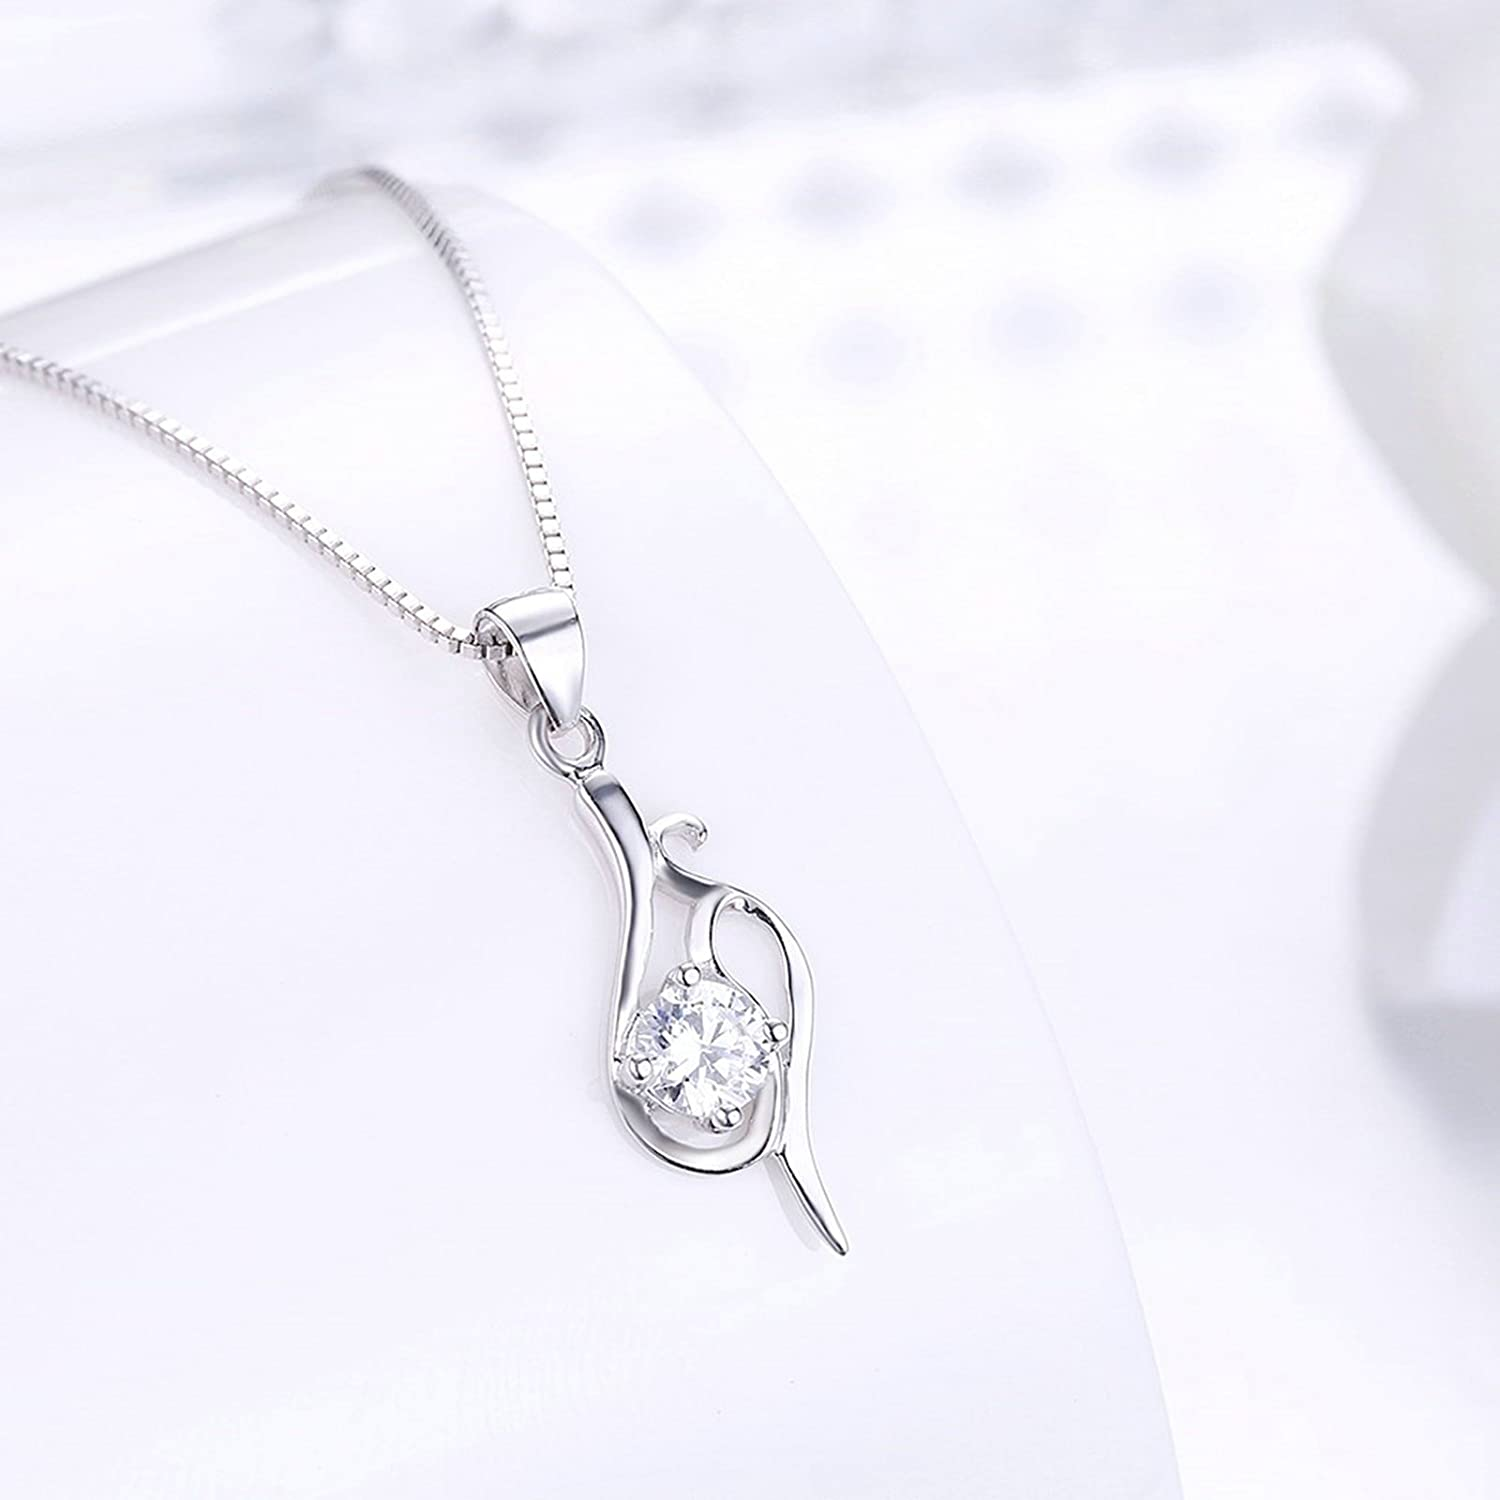 40+4CM Aokarry 925 Sterling Silver Girls Necklace Women Hollow White Chain Length